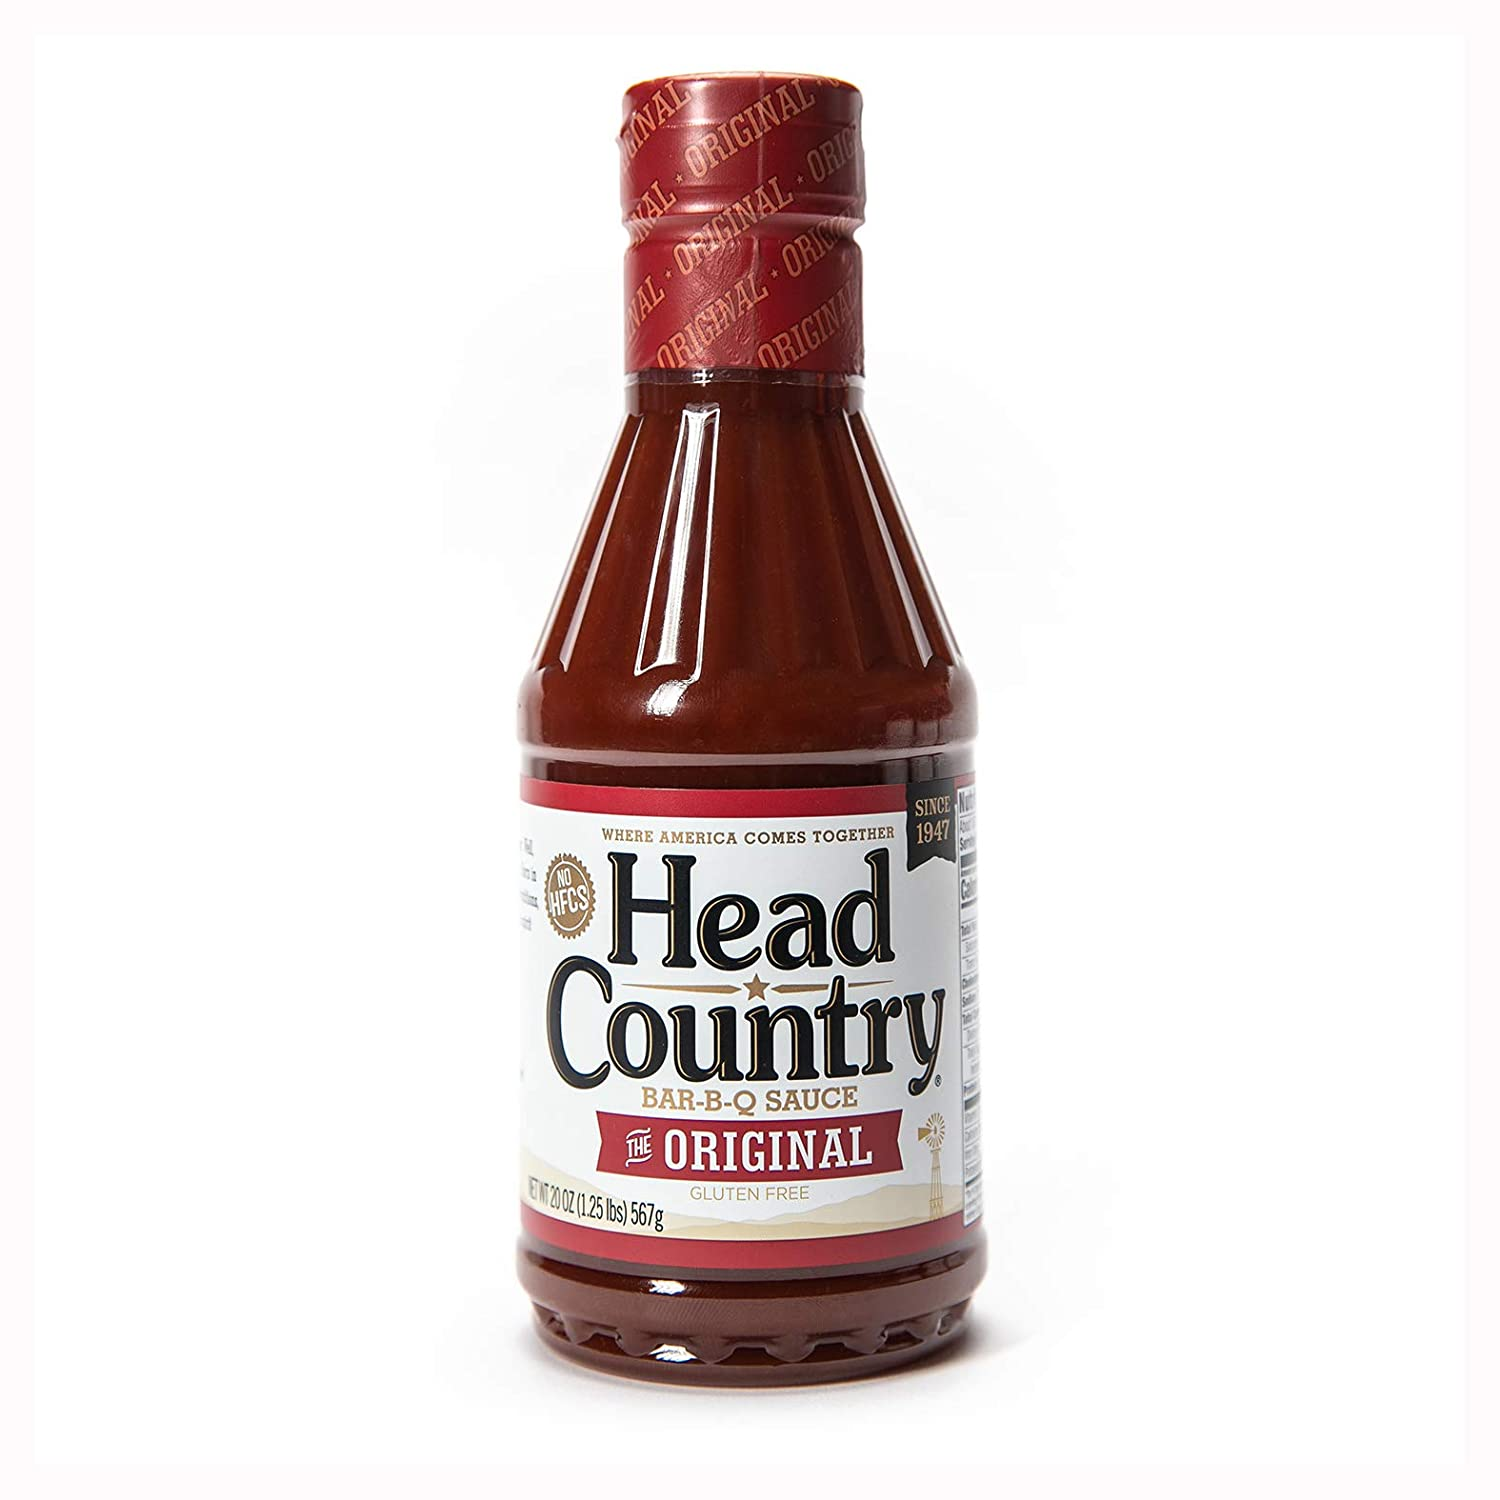 Head Country Bar-B-Q Sauce Original New popularity 20 Challenge the lowest price 6 of Ounce Pack